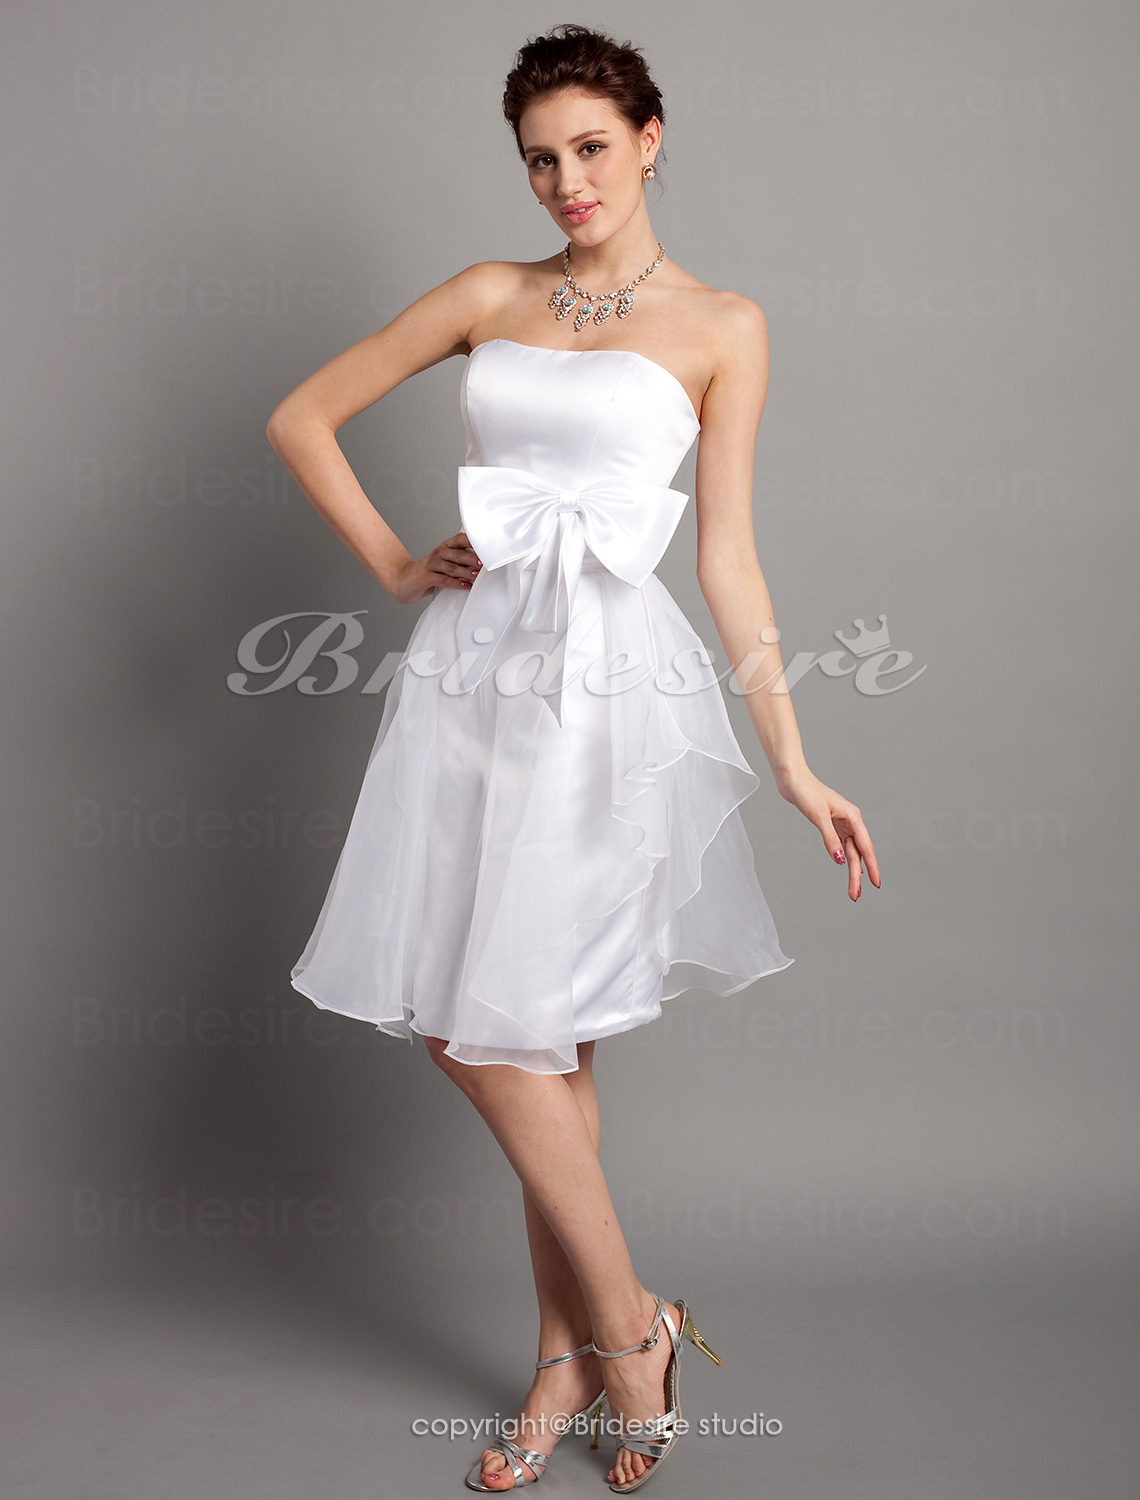 A-line Satin And Organza Knee-length Sweetheart Bridesmaid Dress